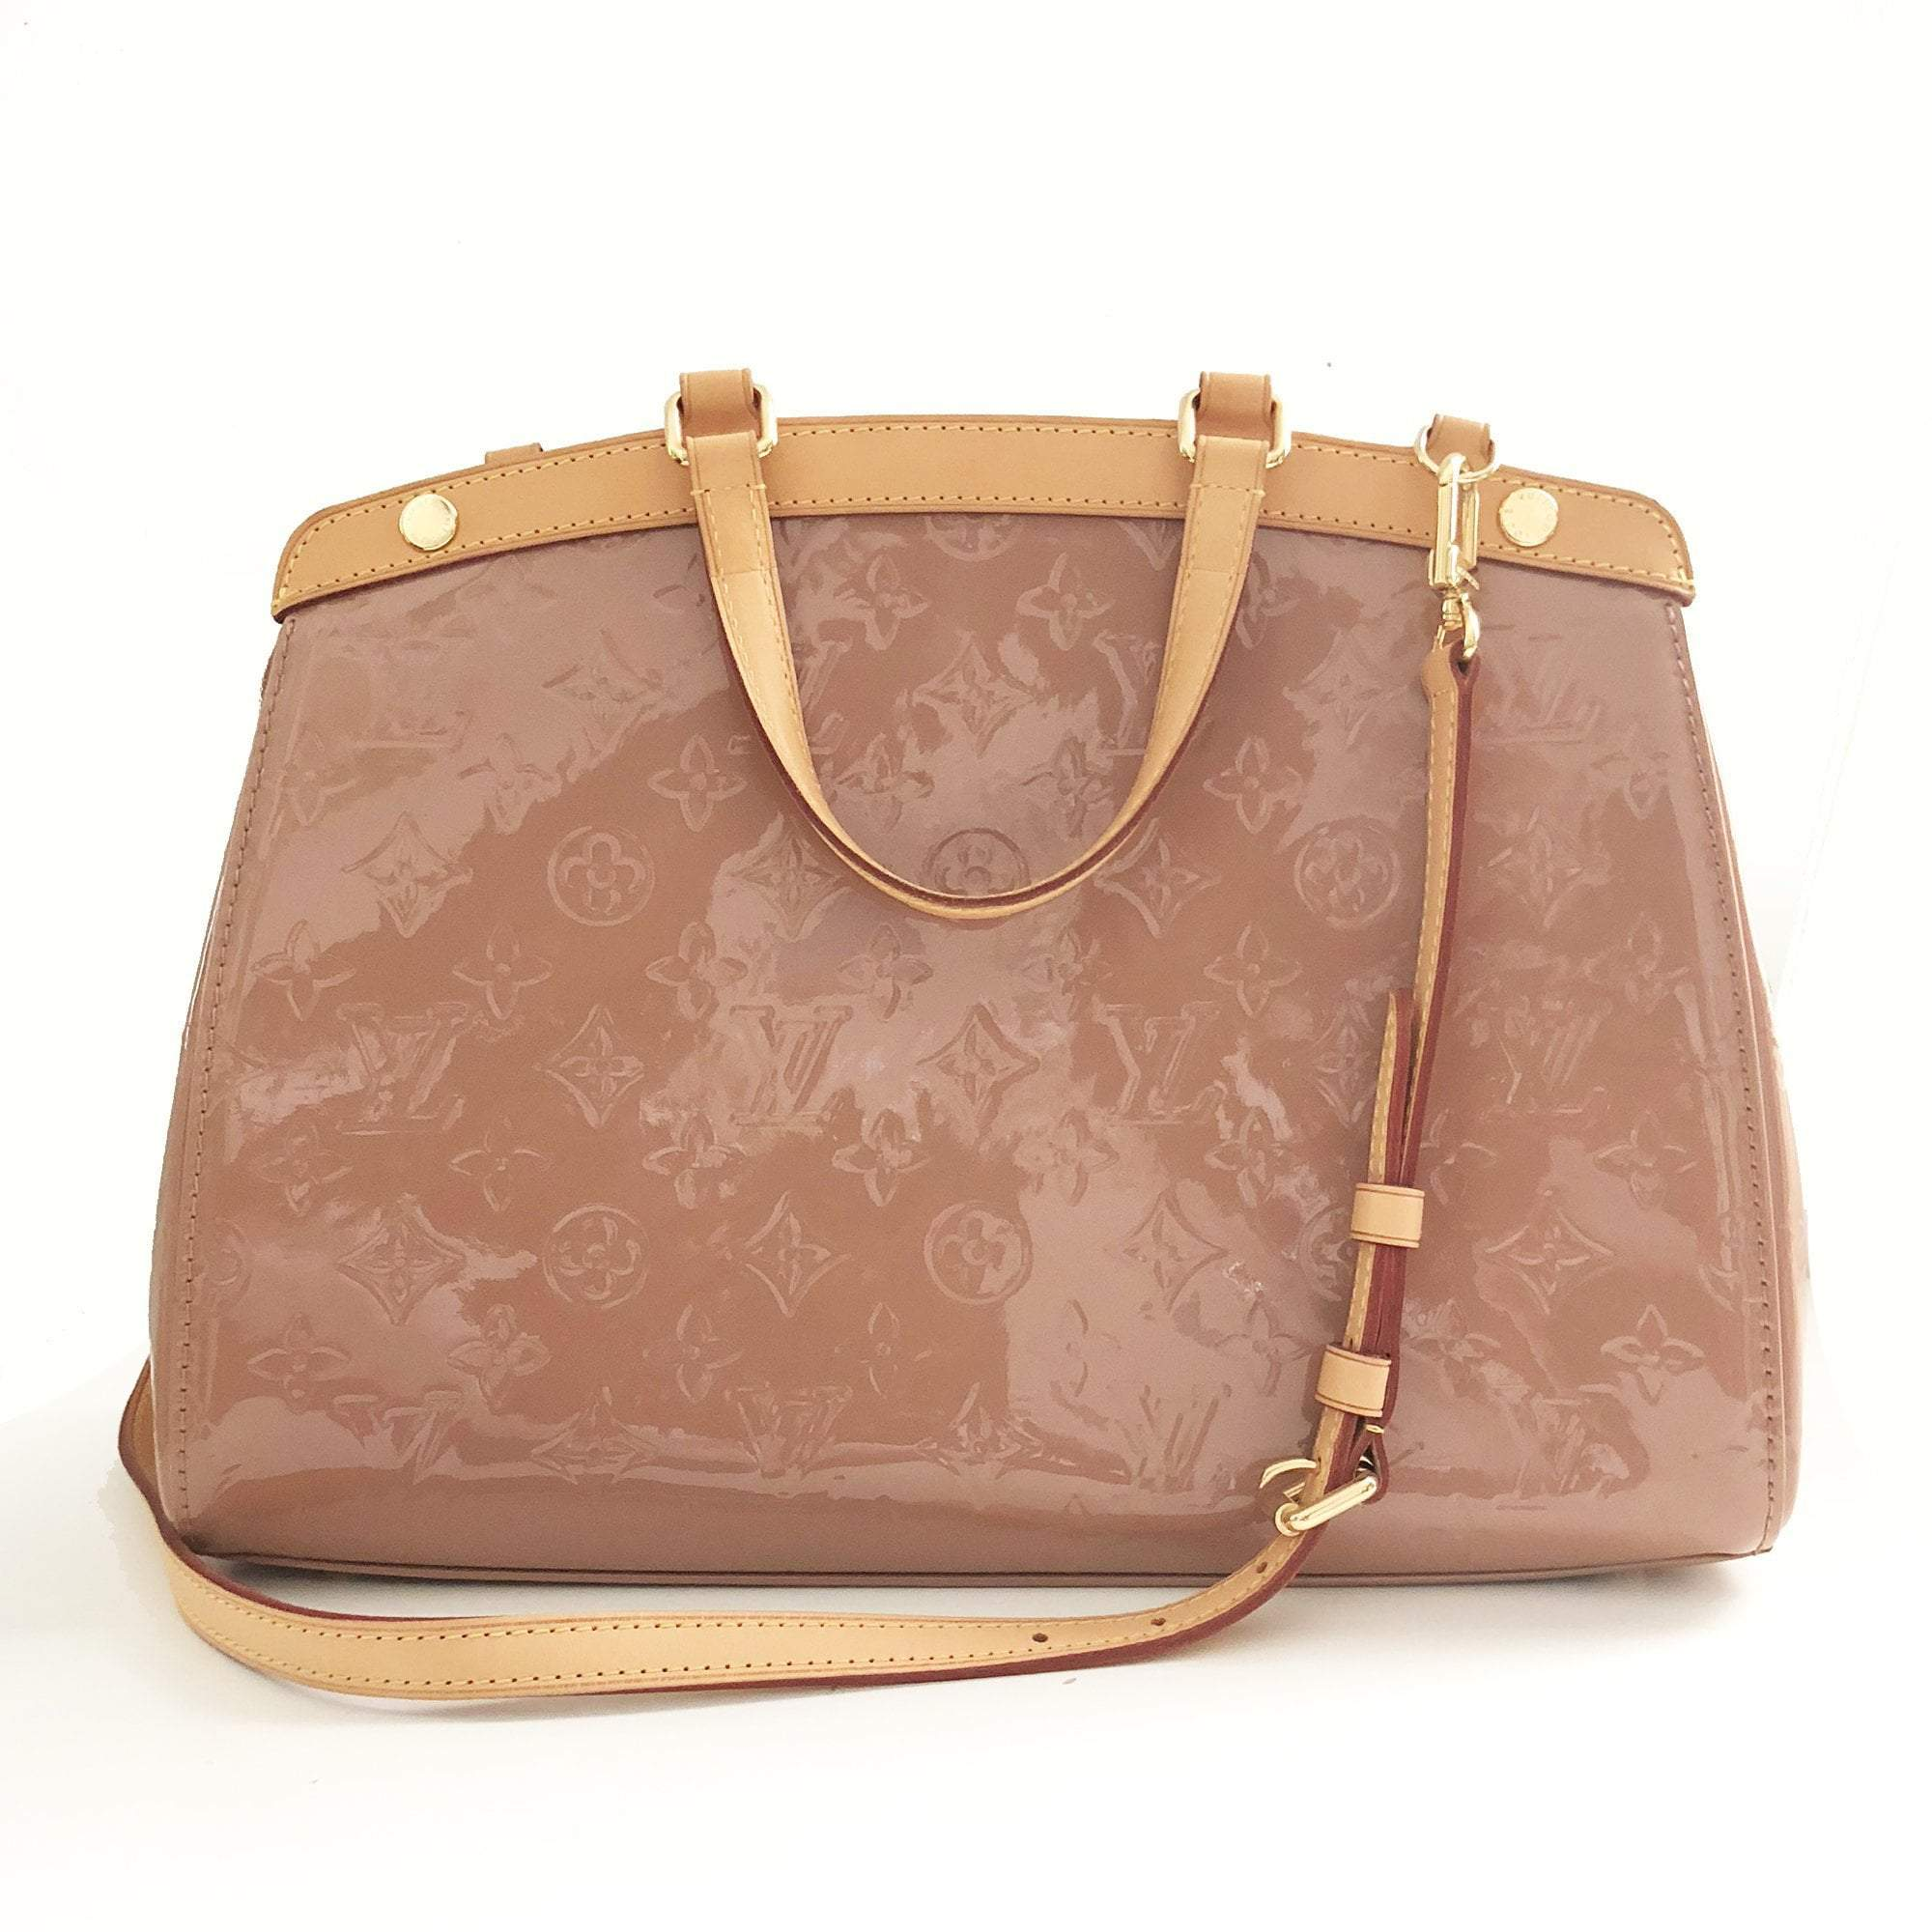 Louis Vuitton Rose Florentine Monogram Vernis Brea Bag